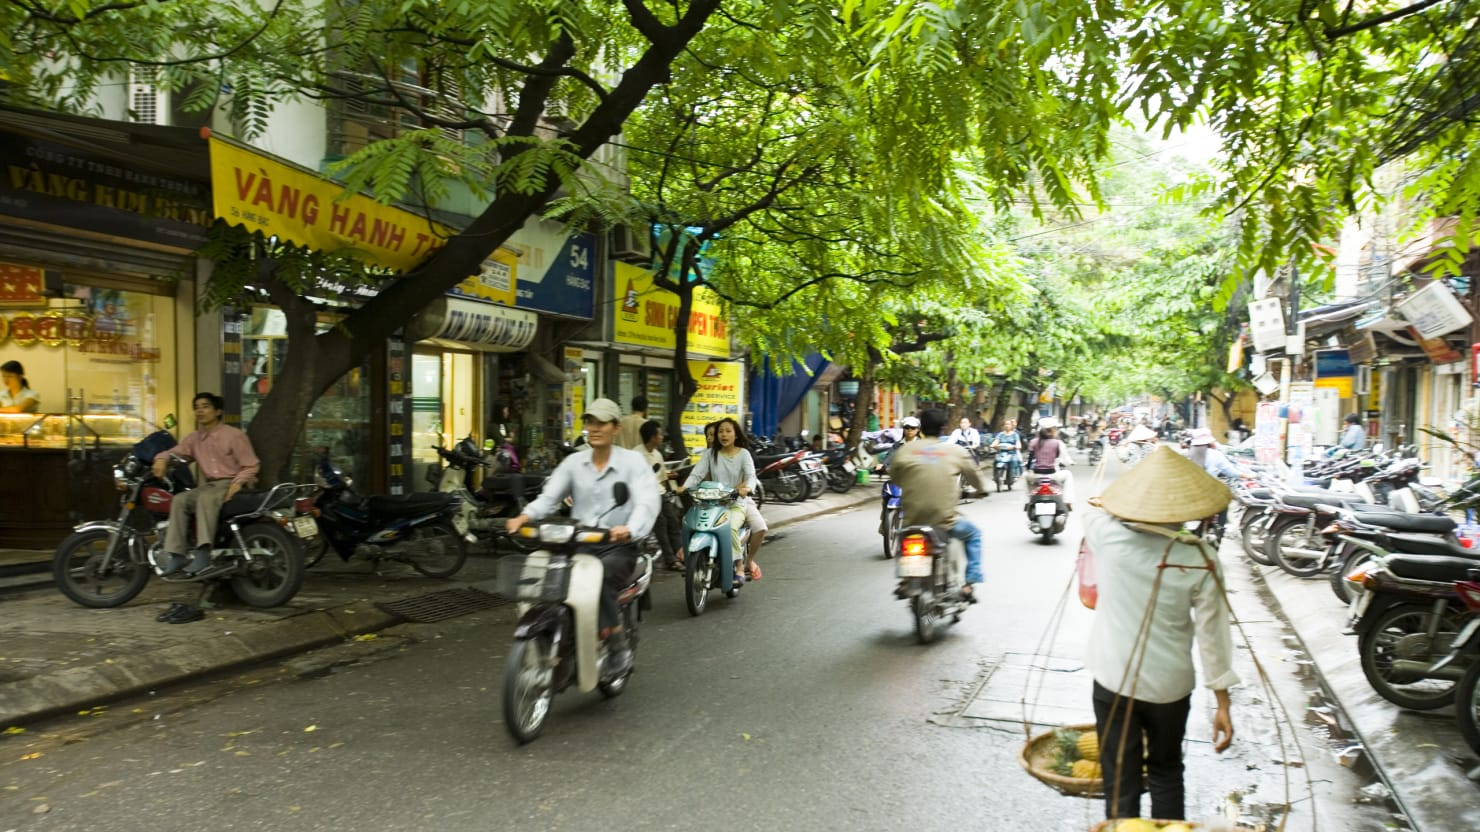 Going Back to Vietnam Is Sometimes Amusing, Often Fraught, and Always Surreal